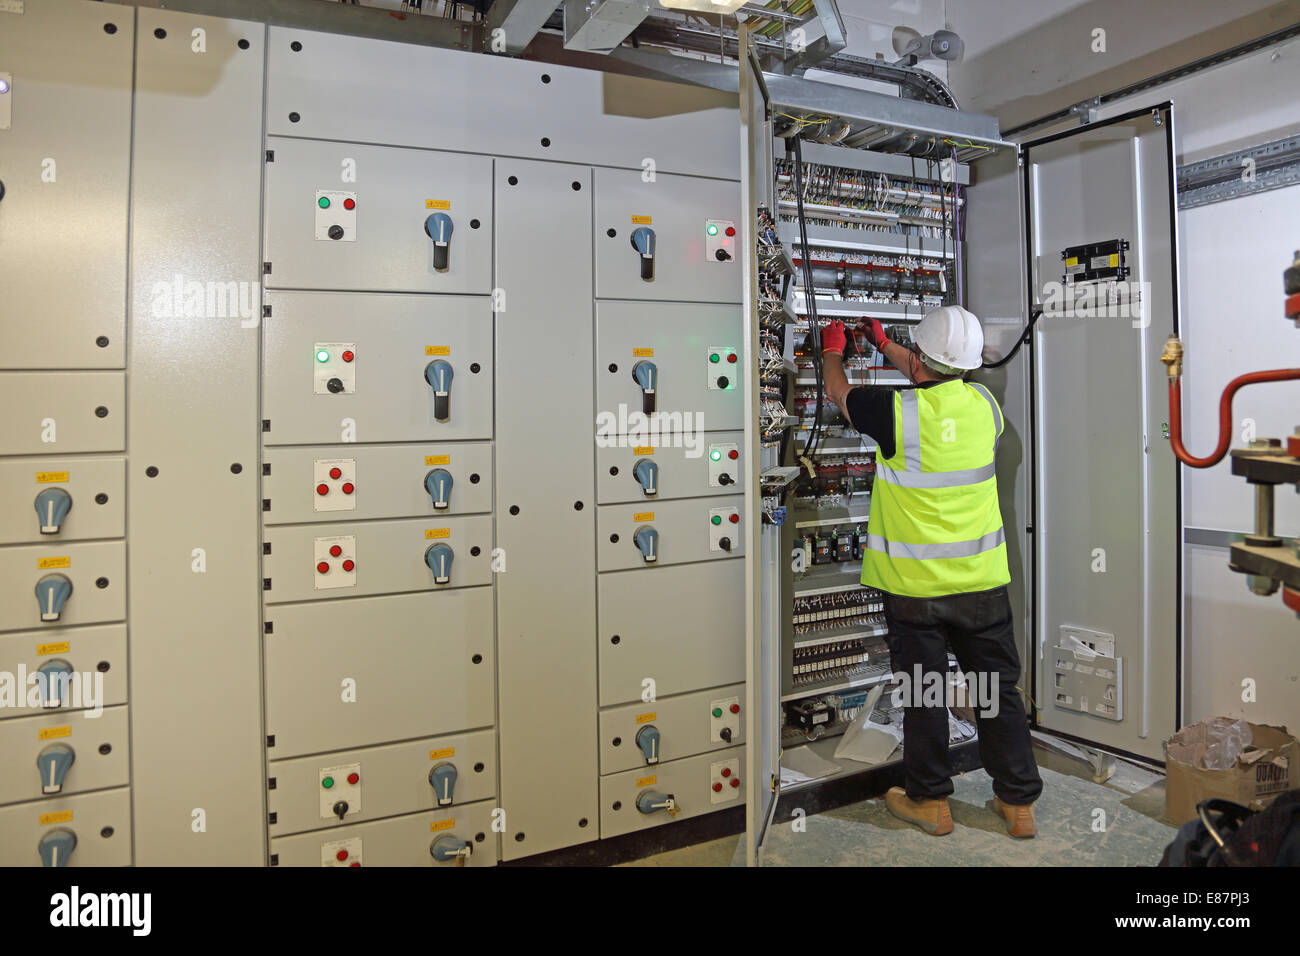 a building services engineer works in an electrical